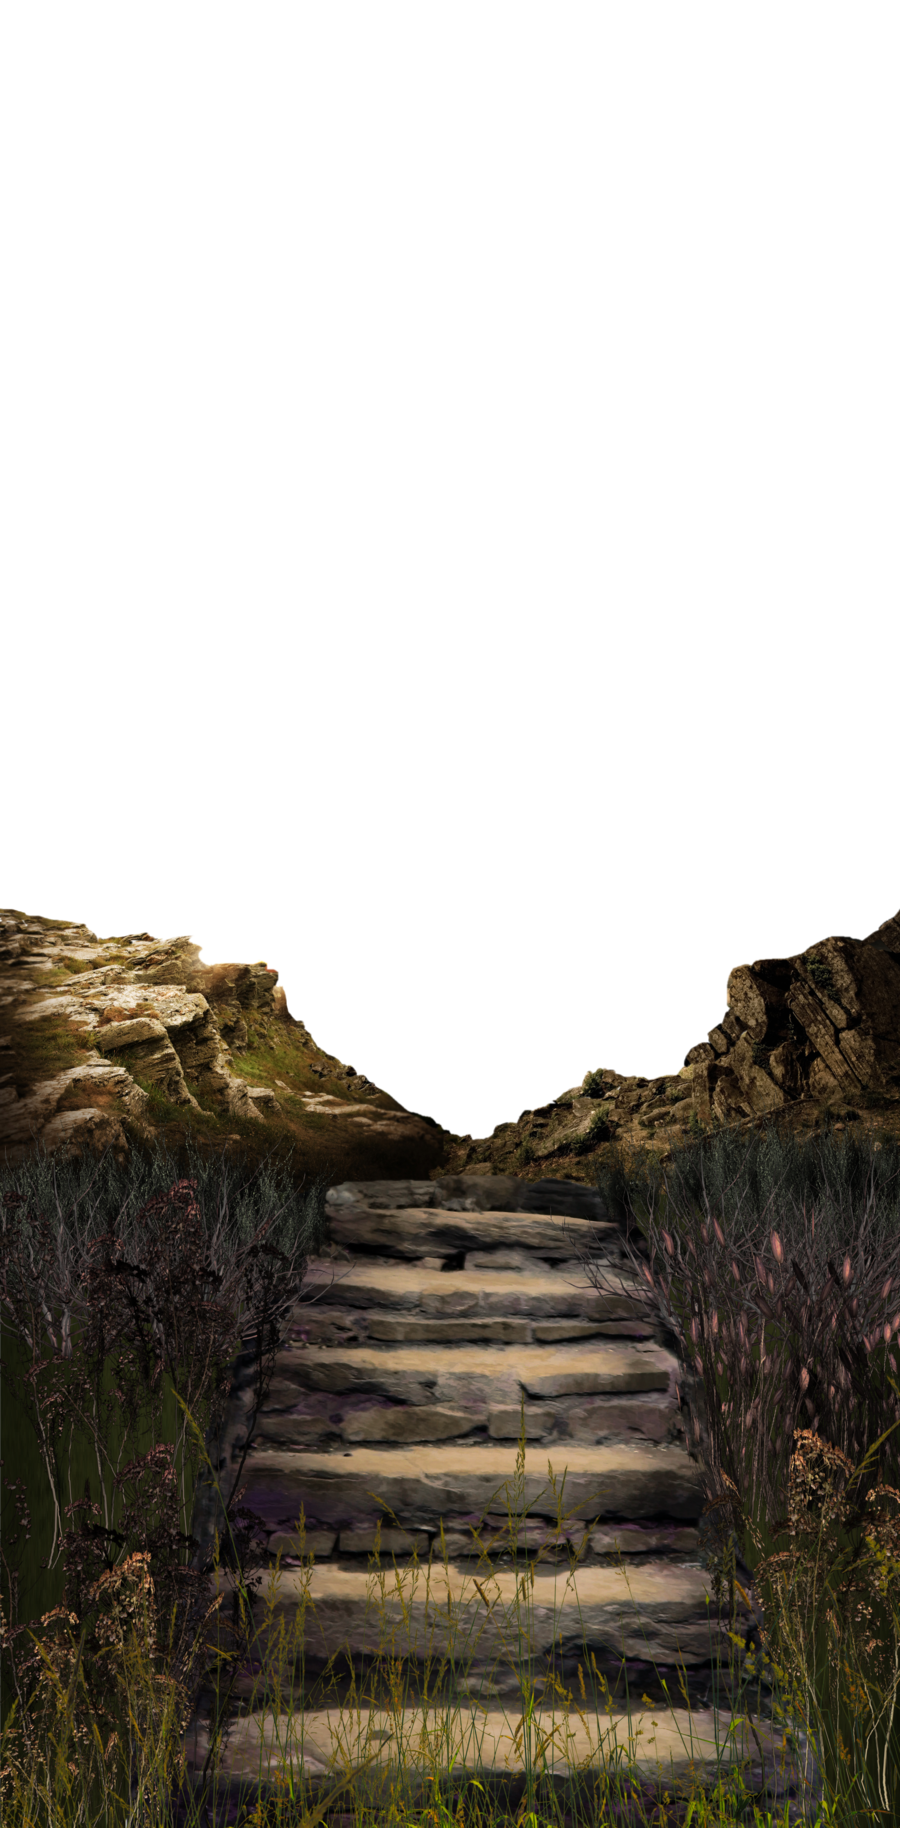 Png images background. Walkway to your by